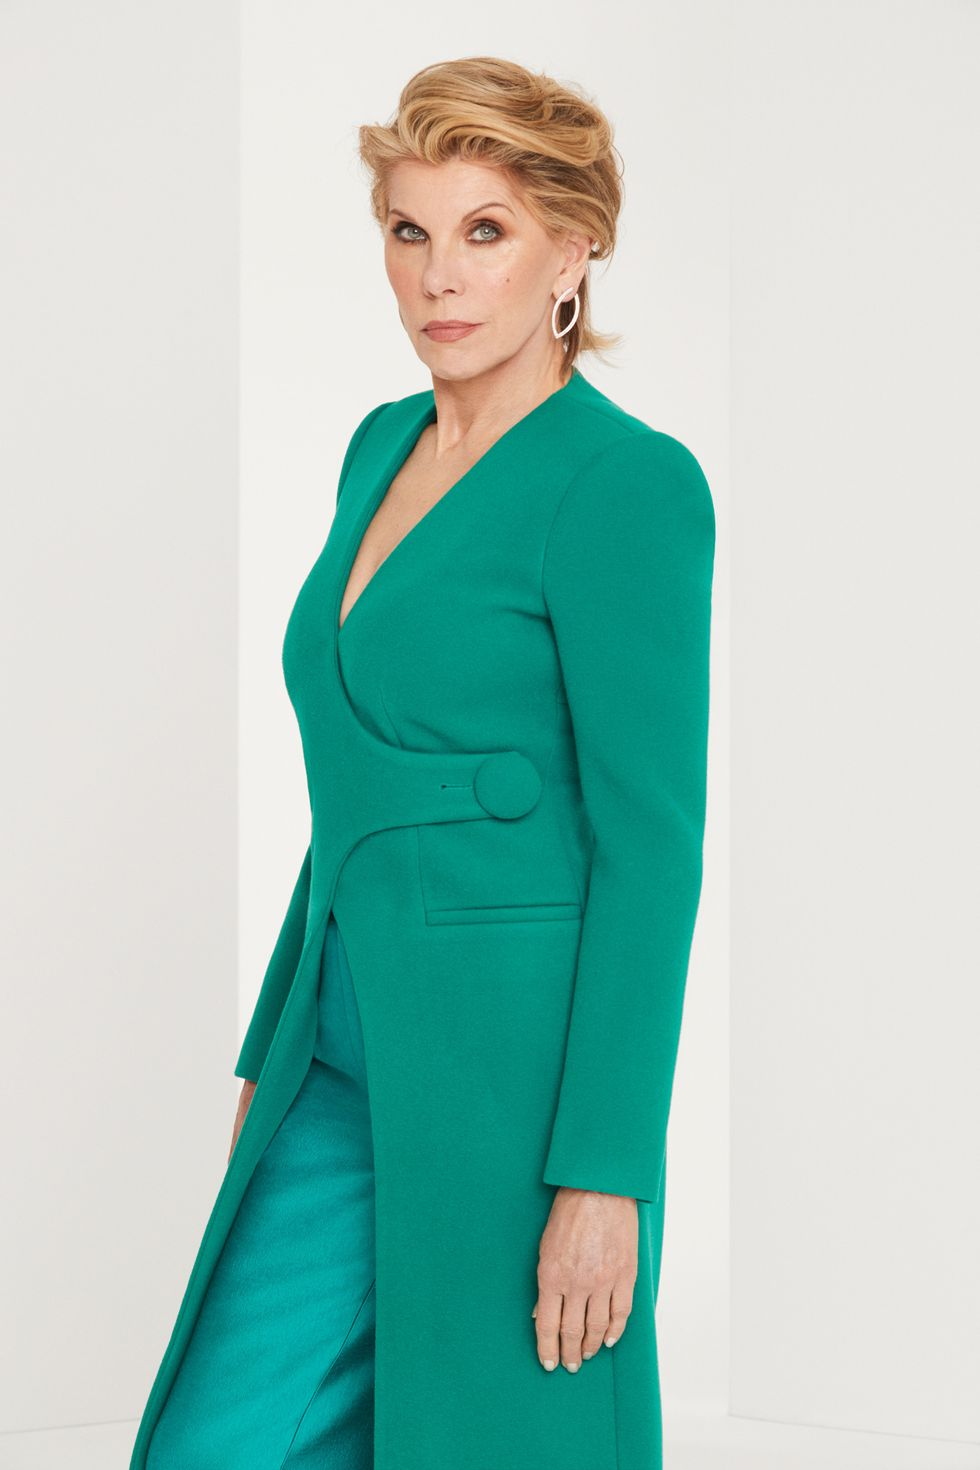 Christine Baranski in a green power suit.